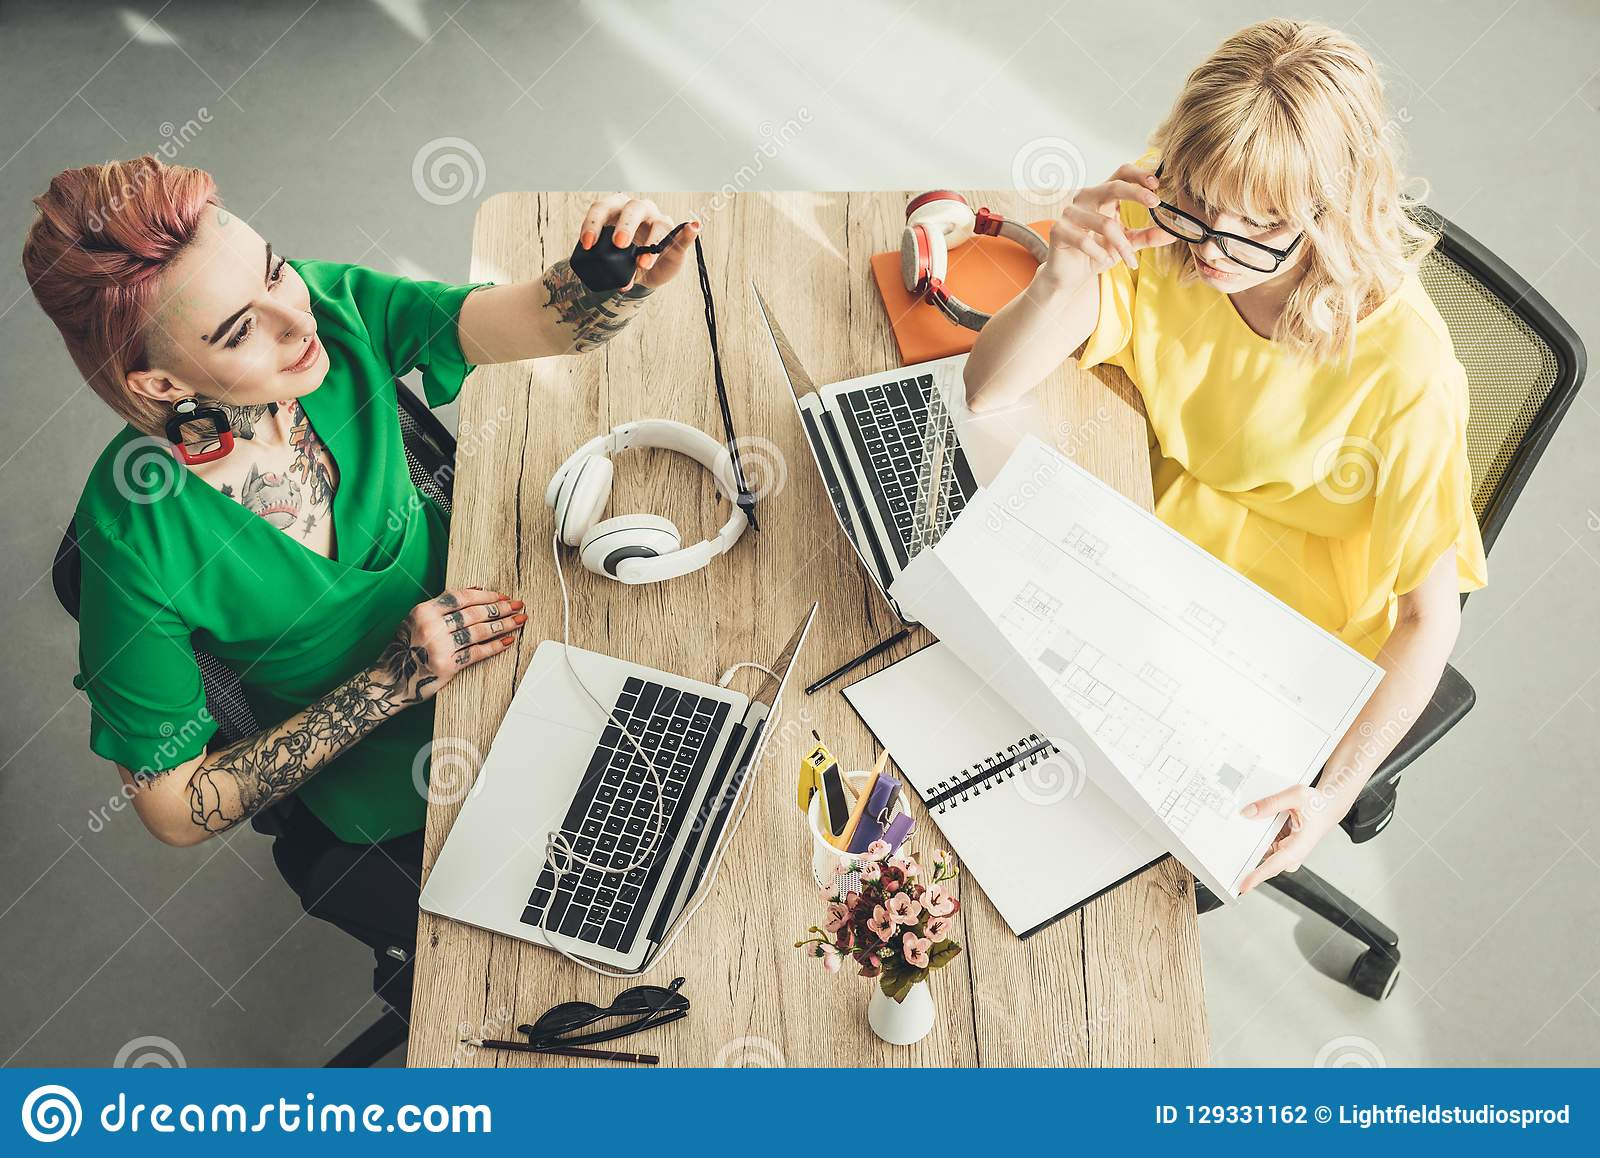 Overhead view of blogger and designer working at table together in office stock photography